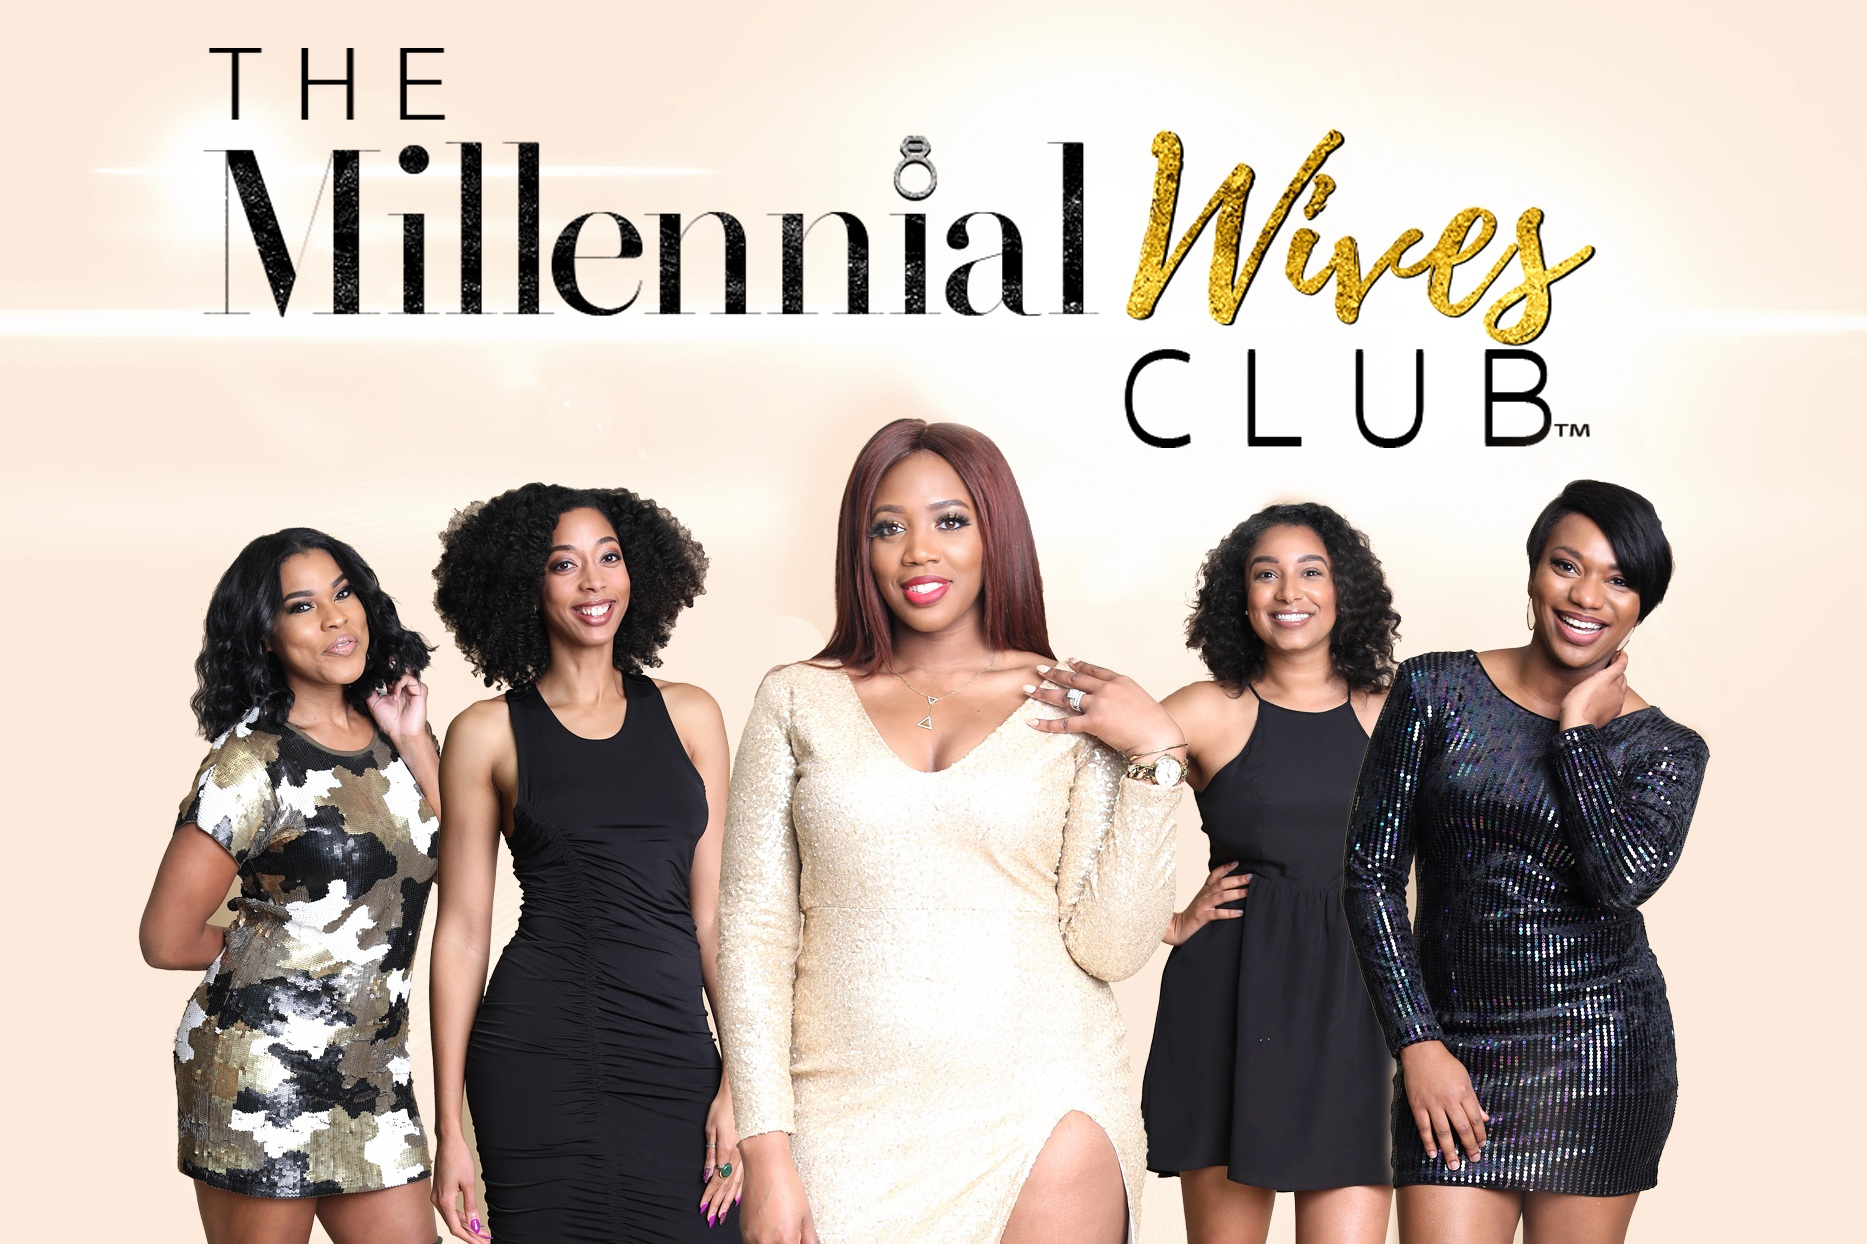 TIA,@millennialwivesclub - THE MILLENNIAL WIVES CLUB (BLOG)